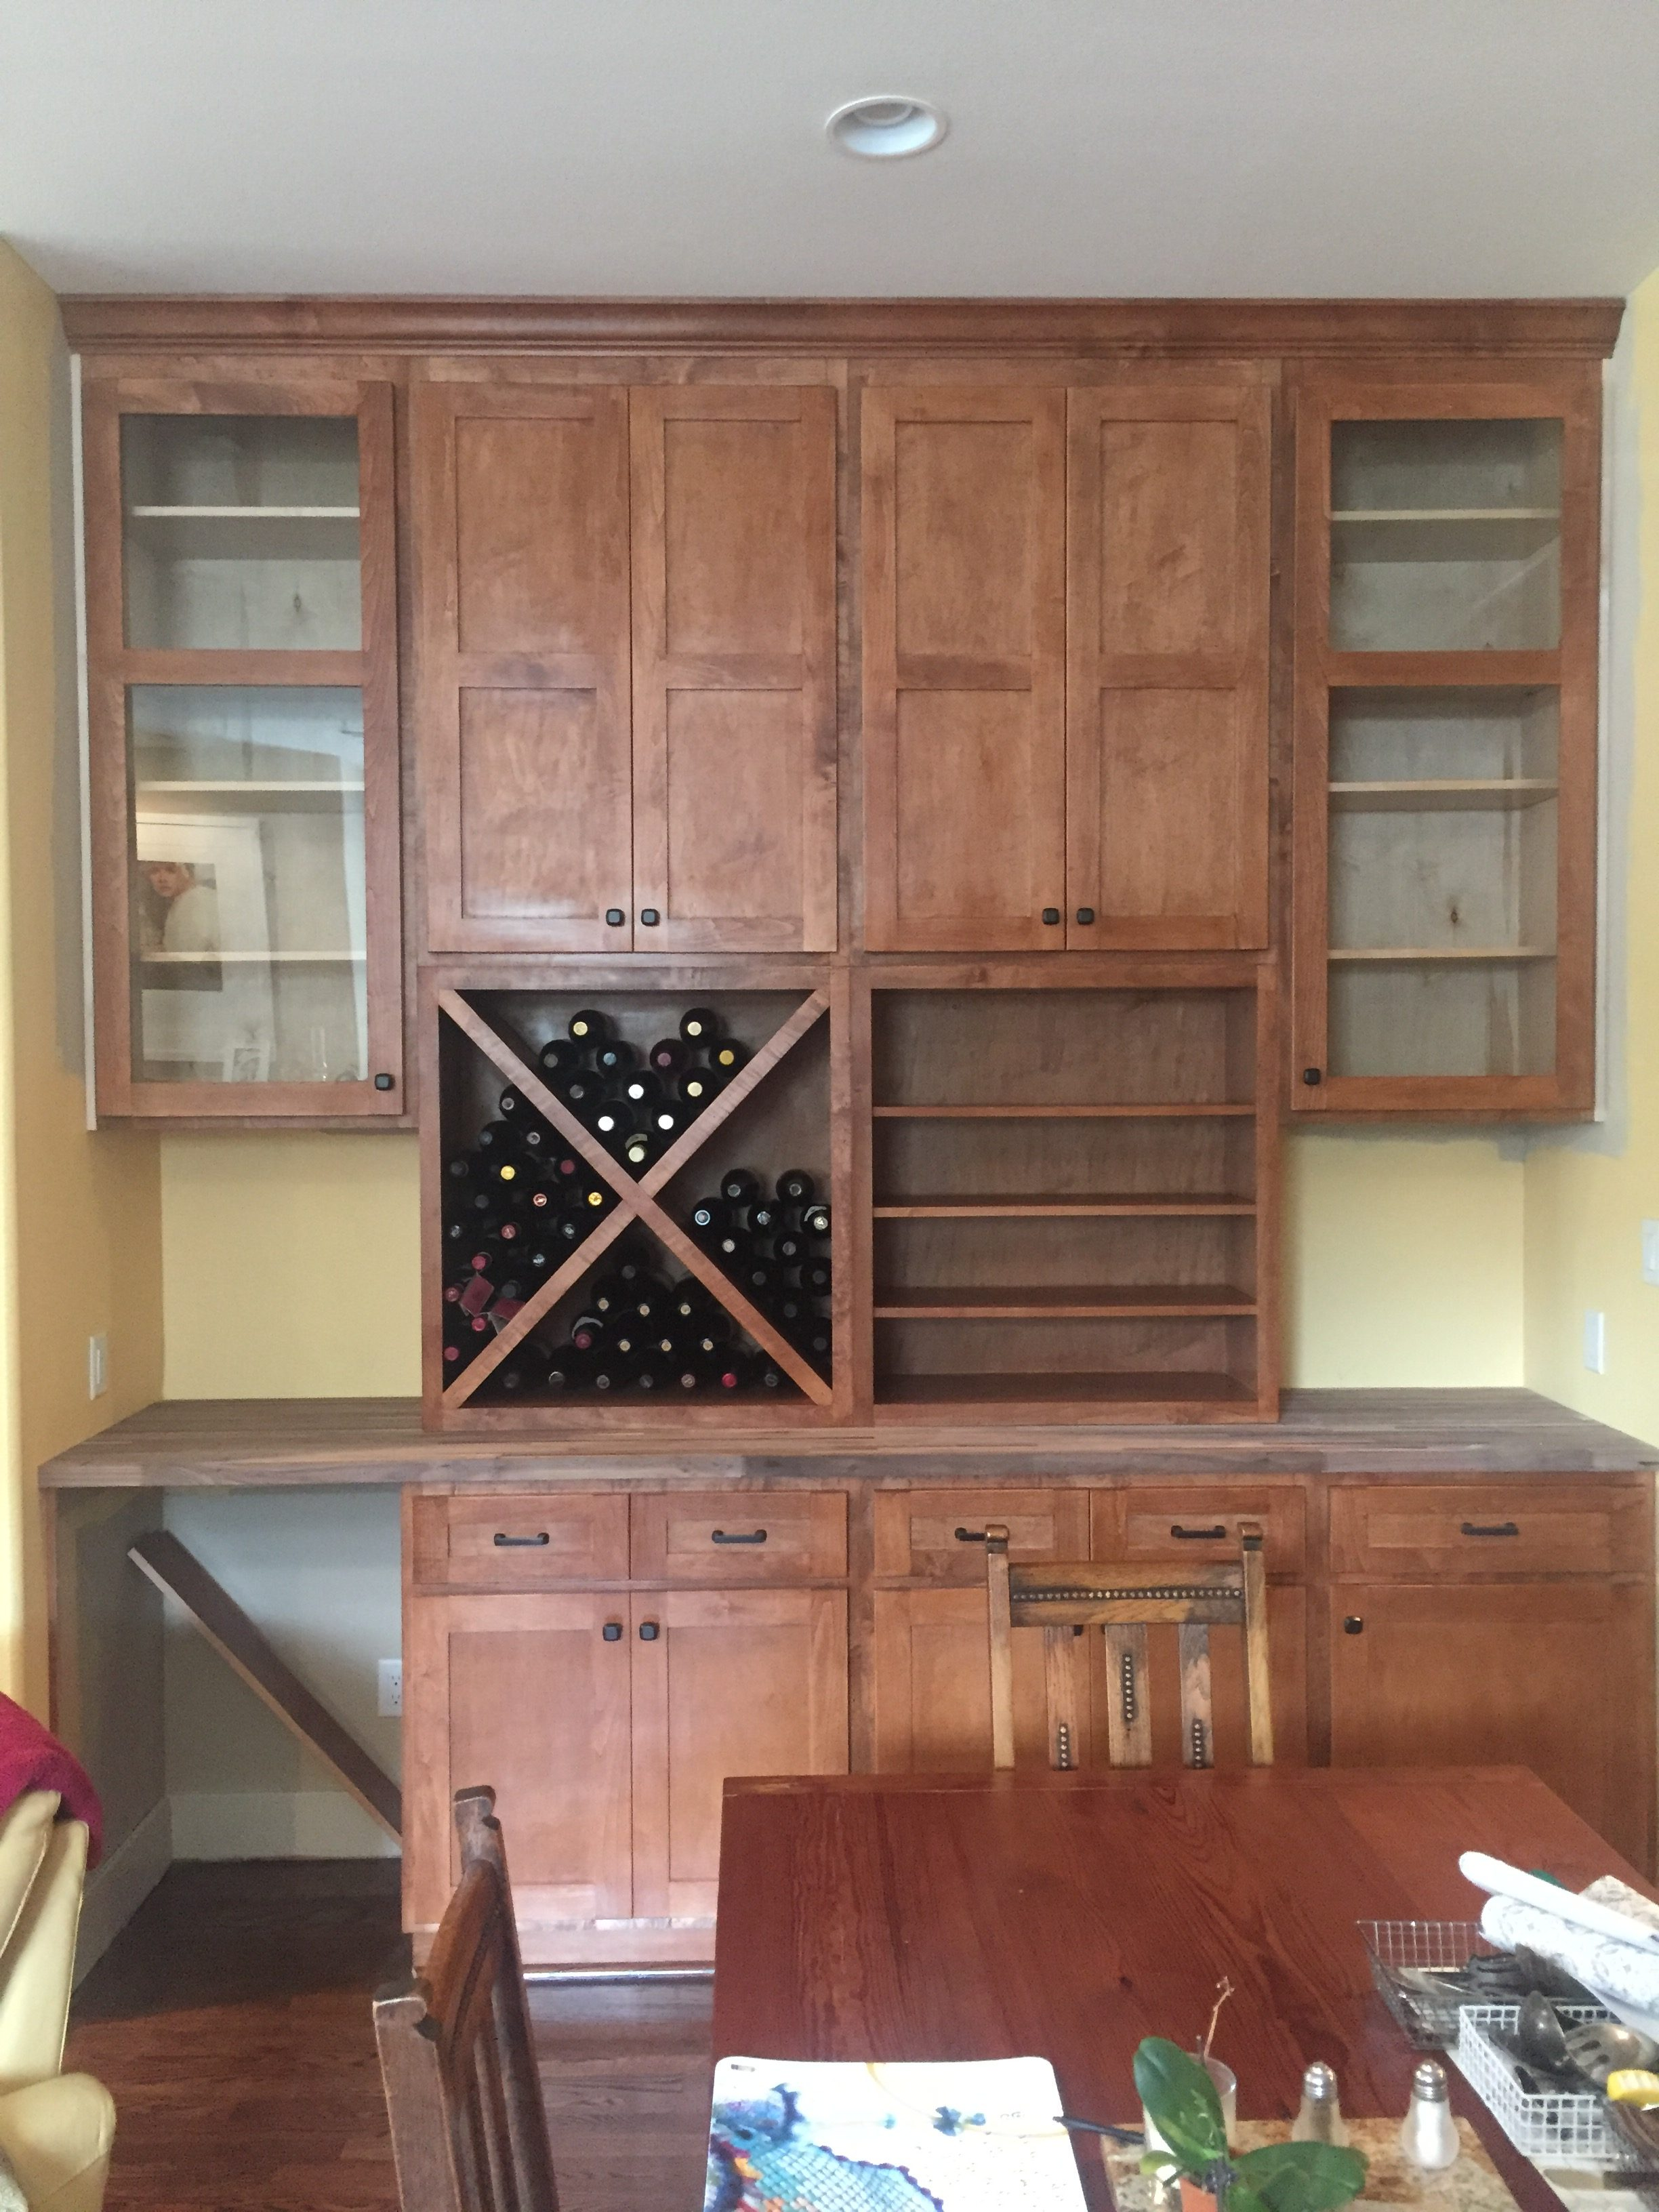 3264 #704538 Custom Cabinet Gallery Home Remedy Houston image Wooden Doors Houston 45732448